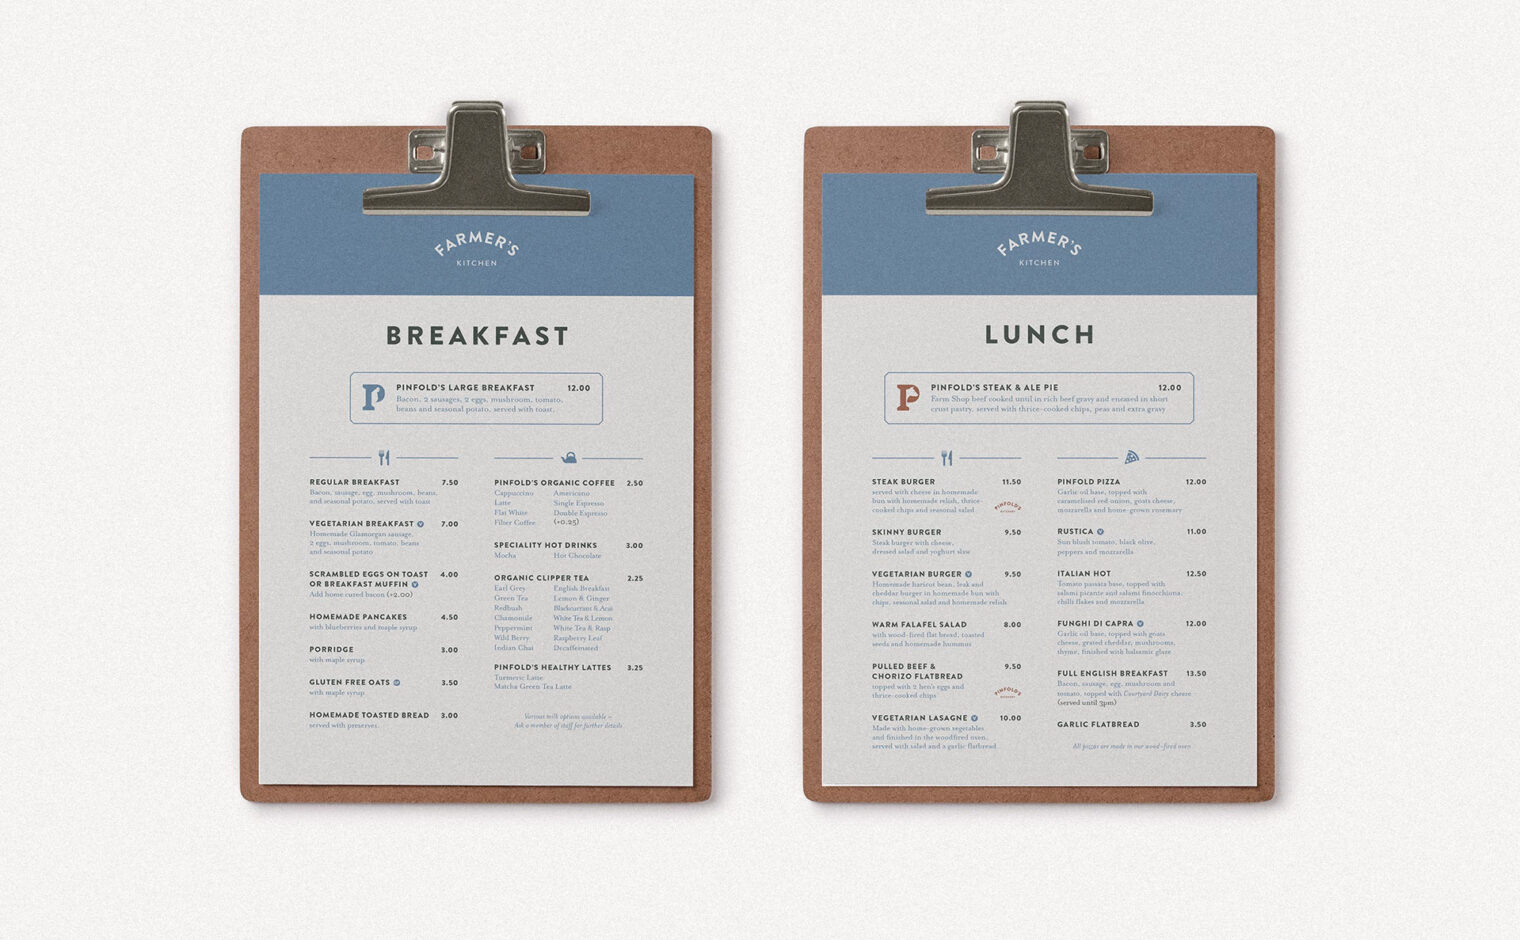 Pinfold Farm Shop breakfast and lunch menus on clipboards